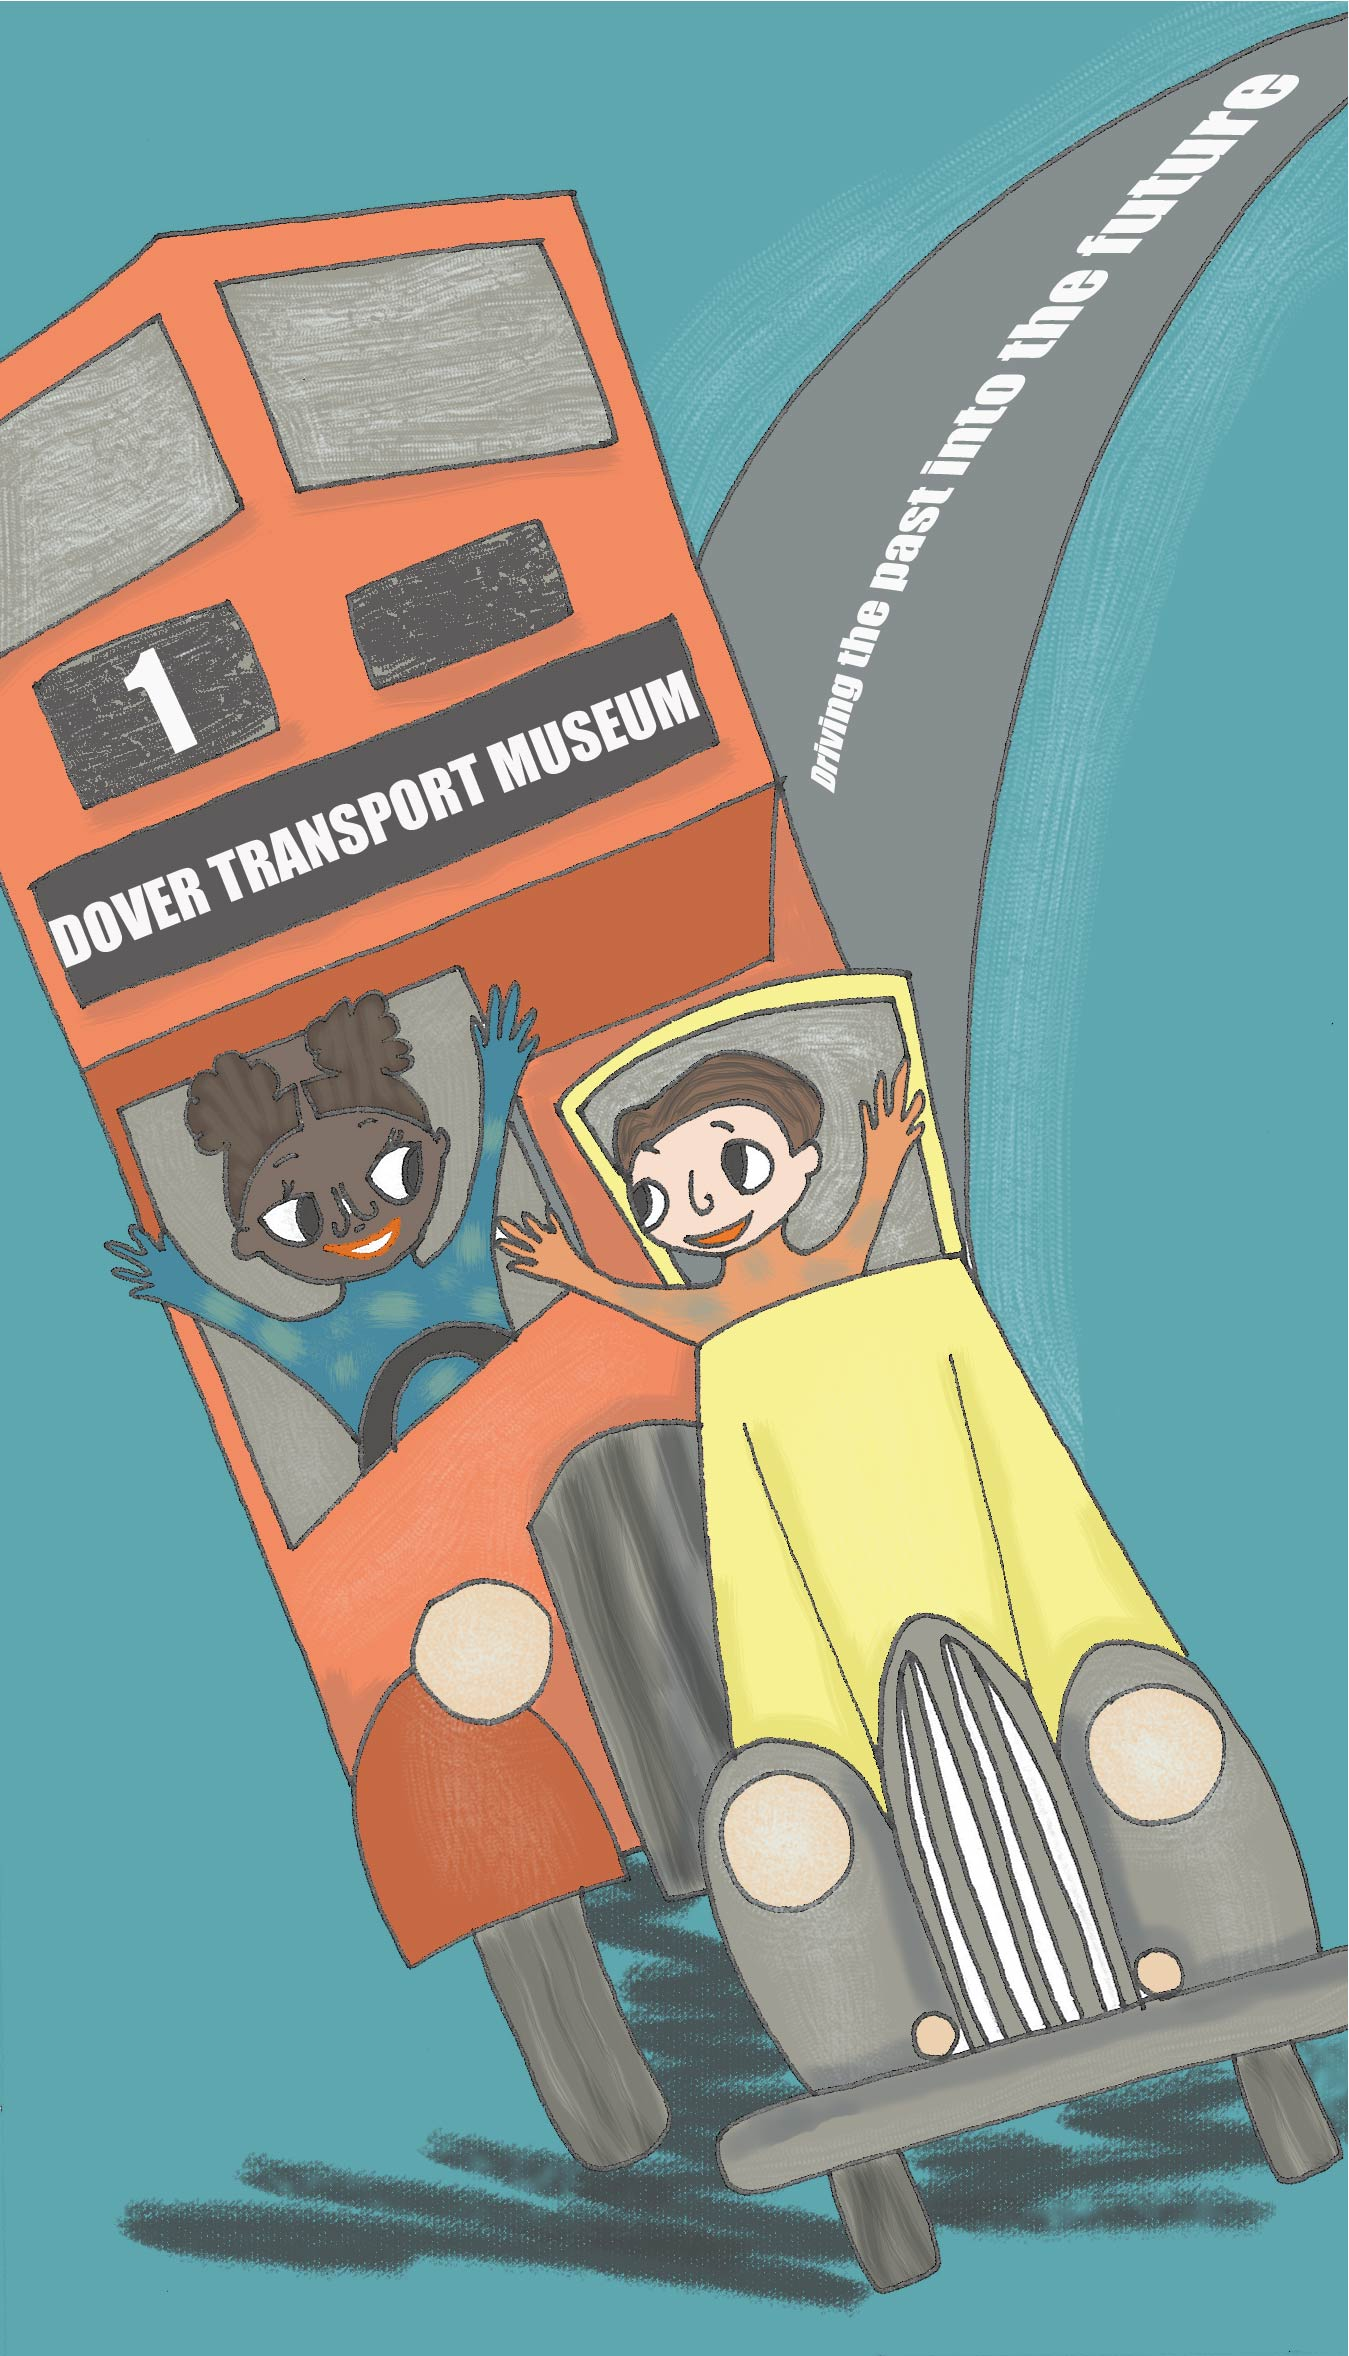 Transport poster kids visual 4-01.jpg